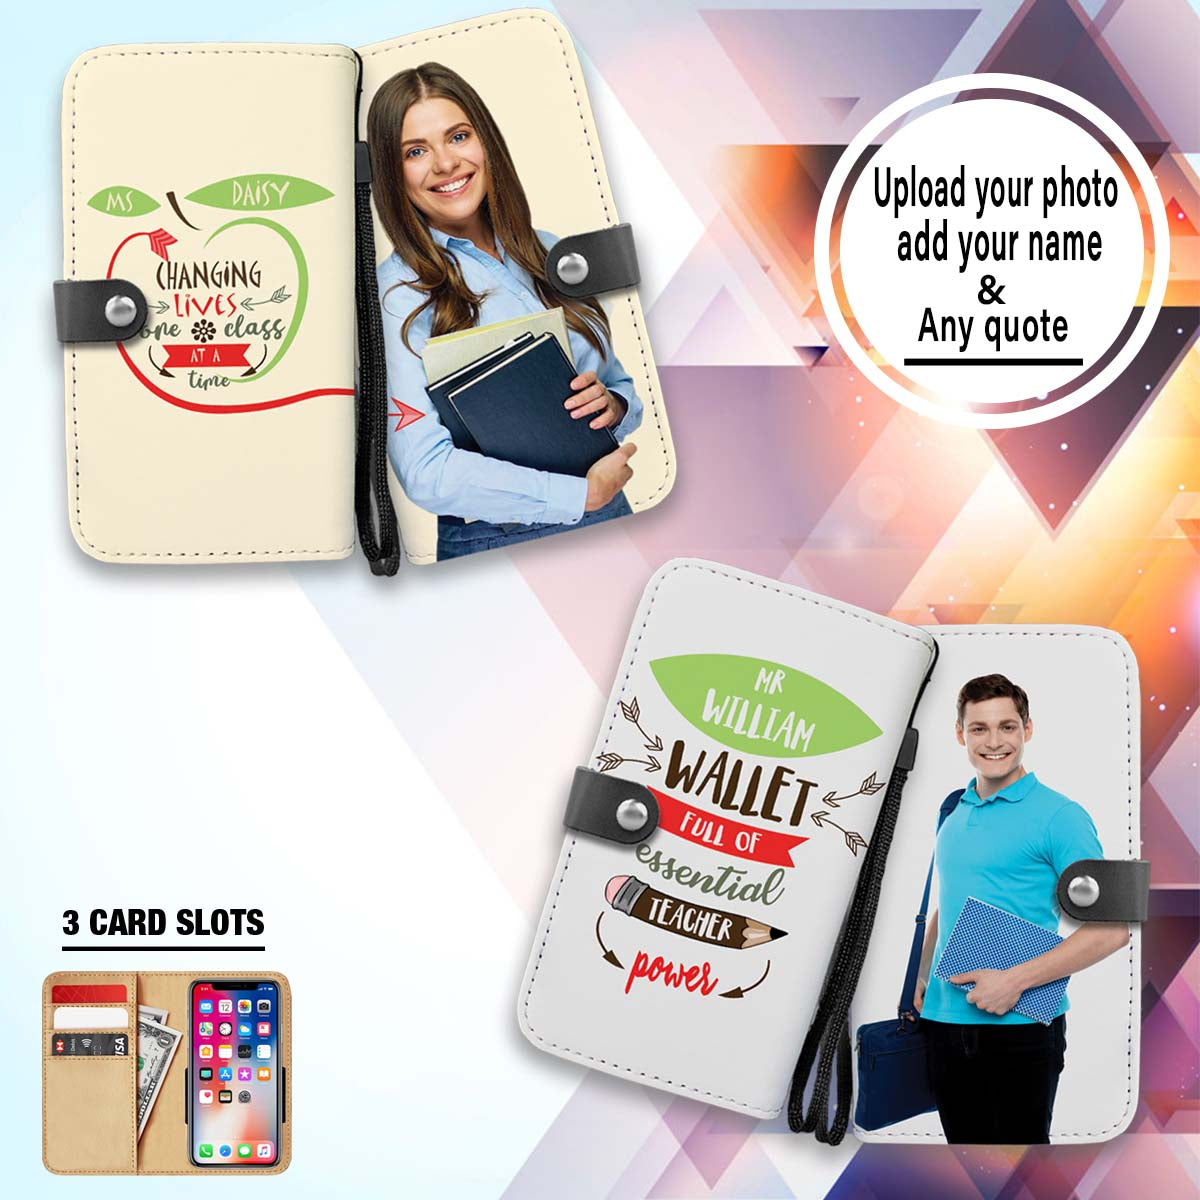 PERSONALIZED wallet case - upload your teacher photo & add quote